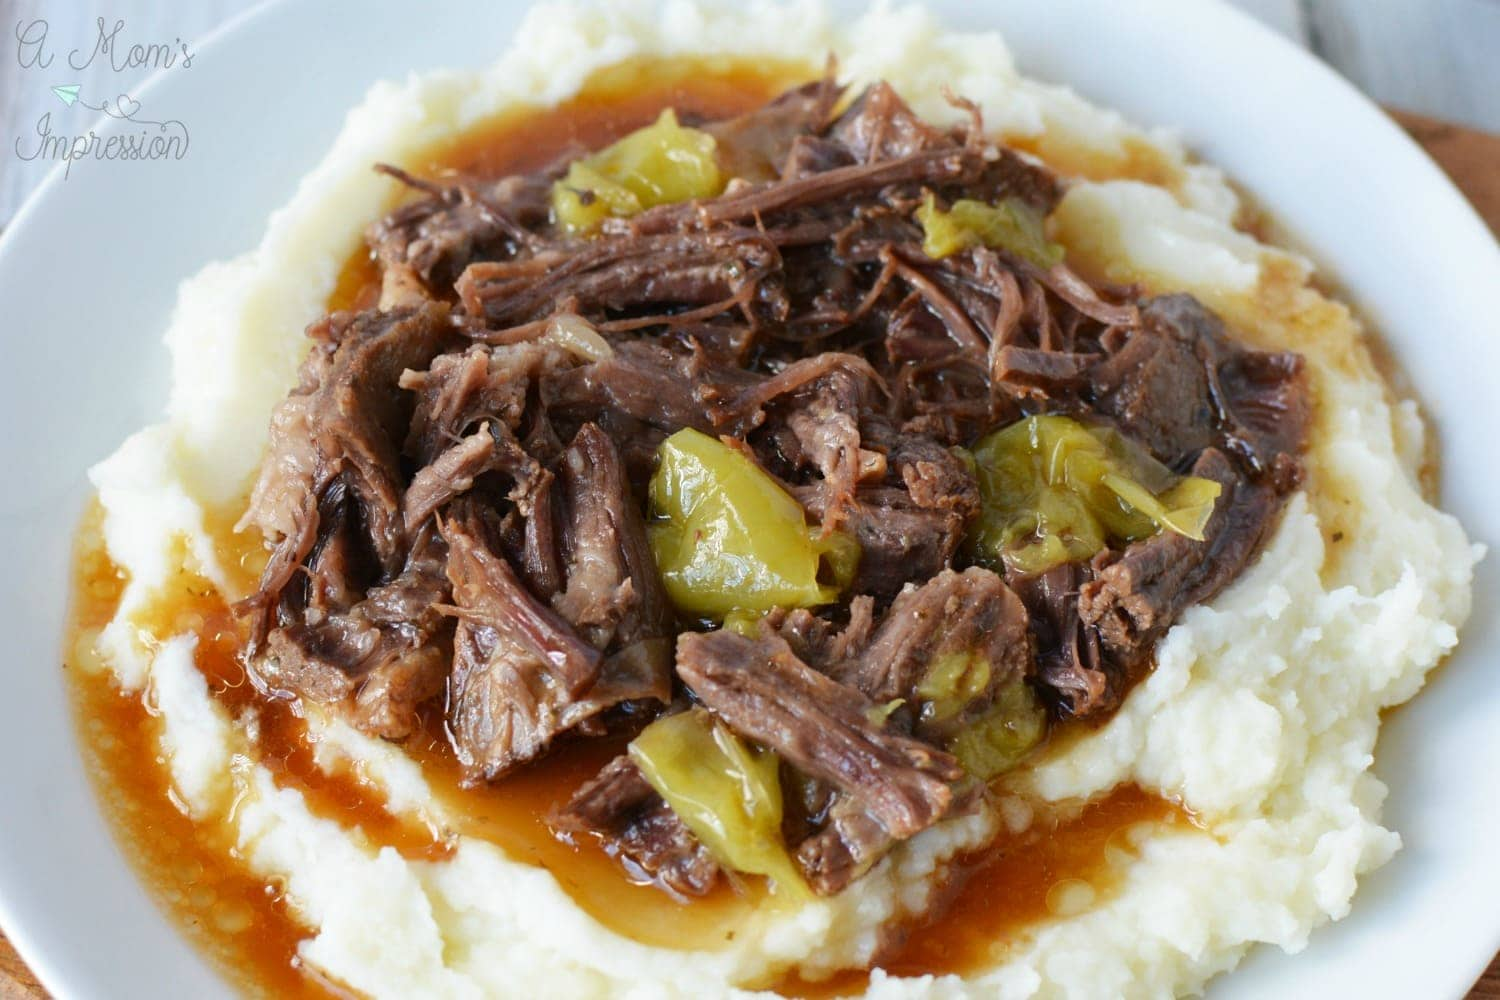 instant pot beef roast with pepperoncinis and mashed potatoes on a white plate.